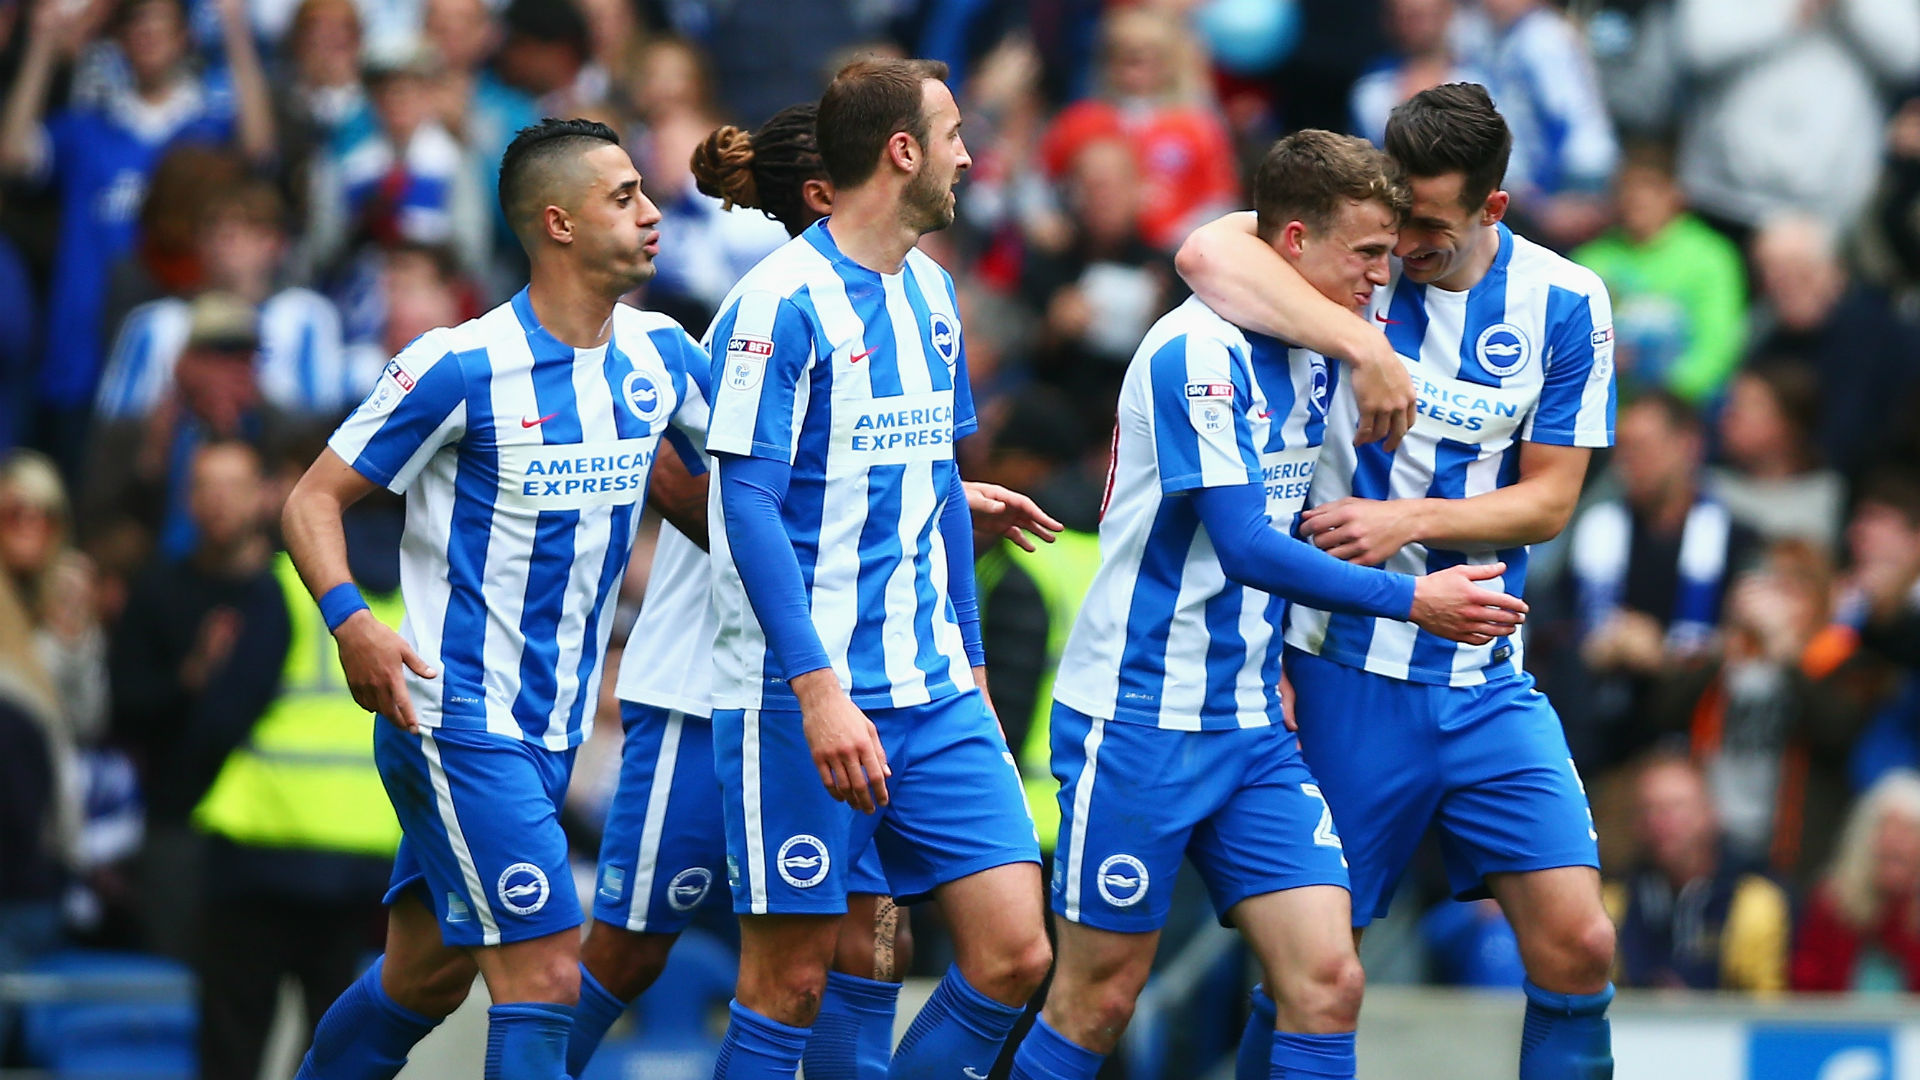 Brighton and Hove Albion promoted to Premier League